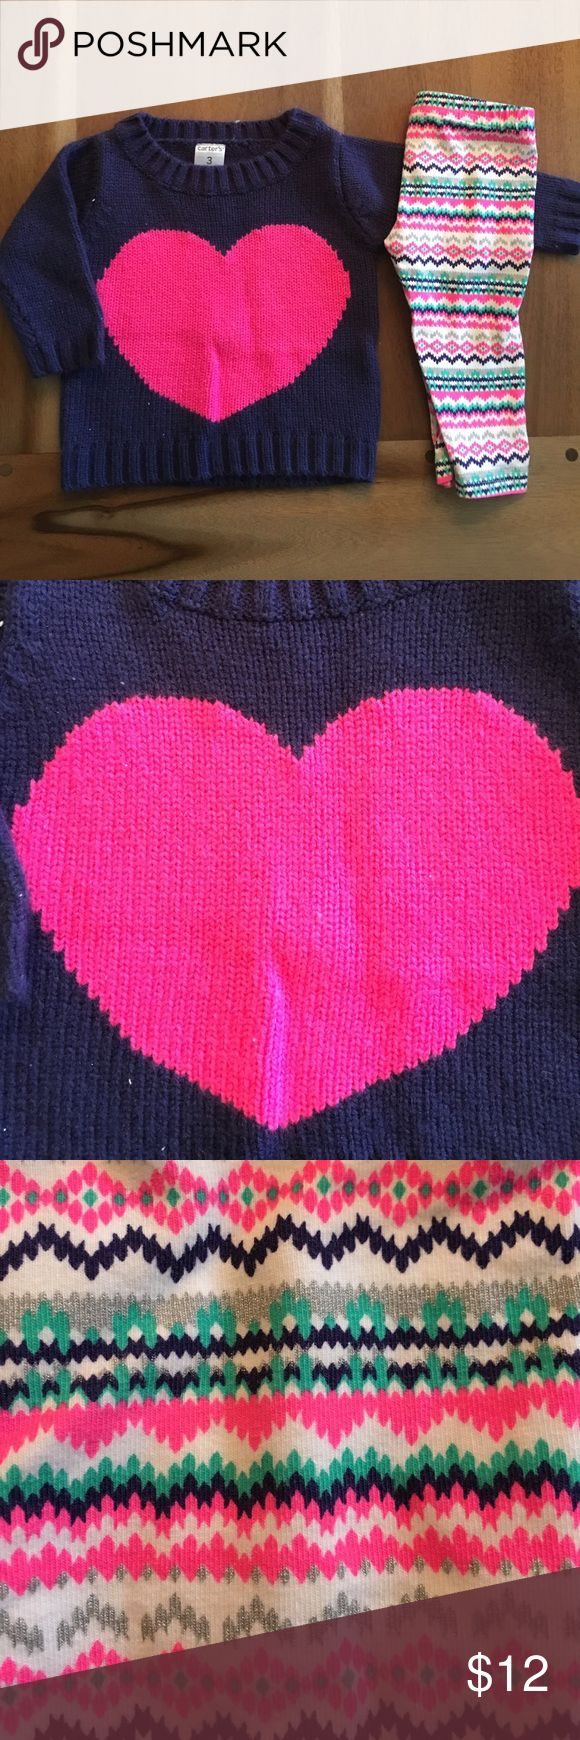 Carter's outfit Navy sweater with pink heart.  Some piling due to nature of fabric.  Aztec print pants to match. Carter's Matching Sets